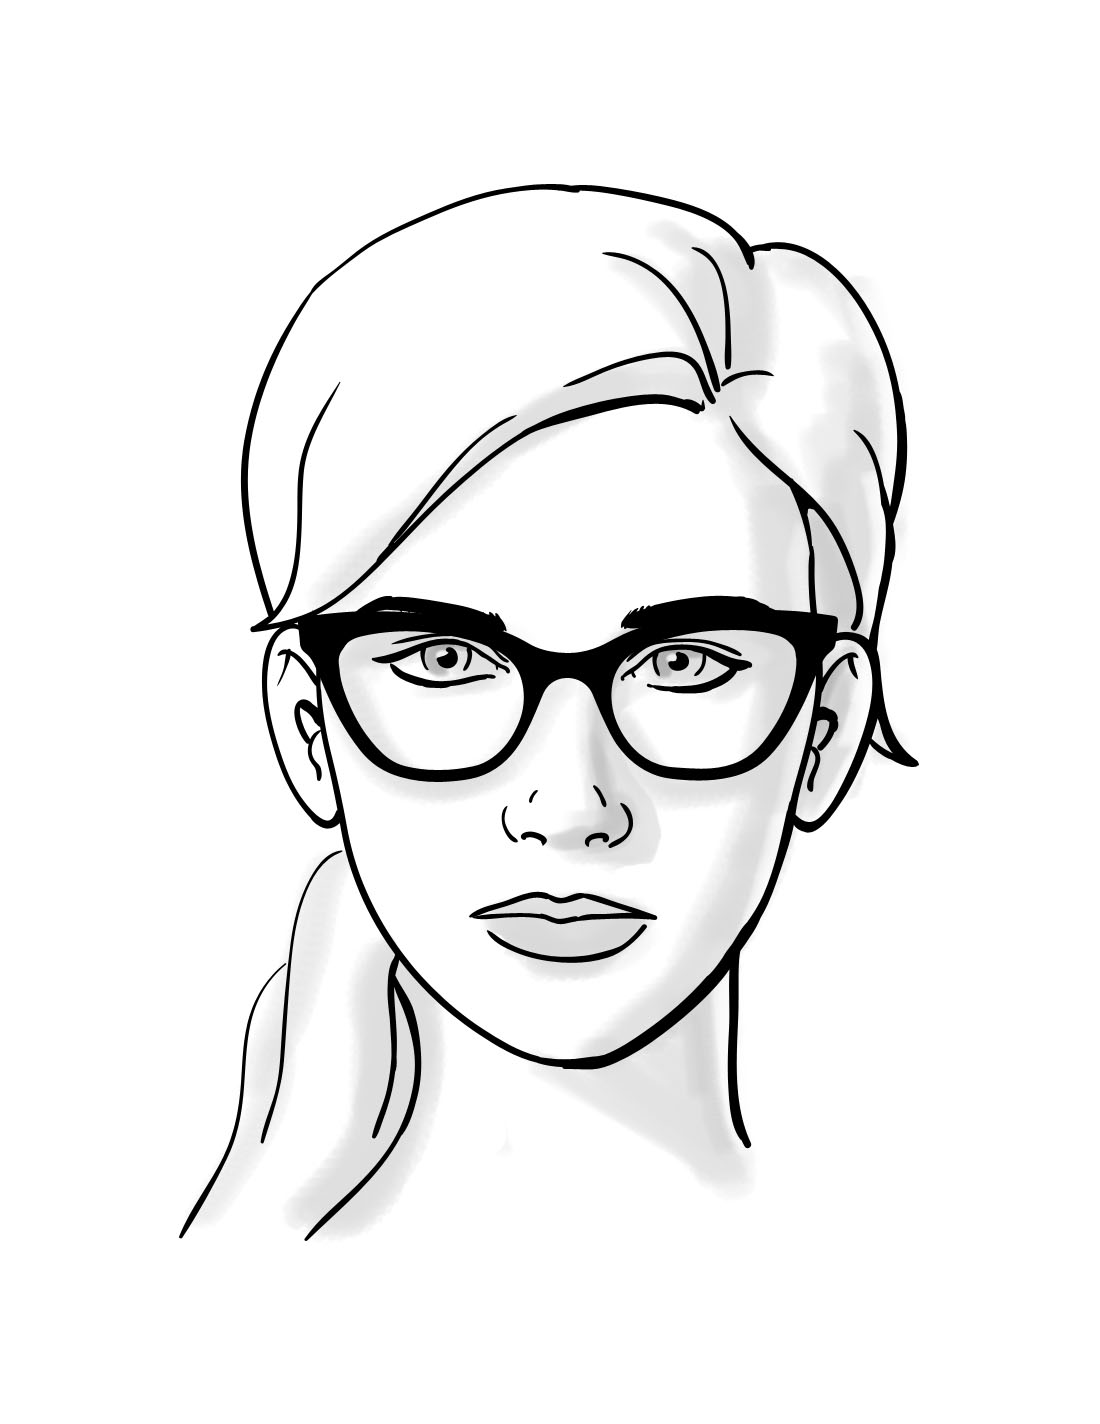 1100x1424 How To Choosing The Right Glasses For Heart Face Shapes